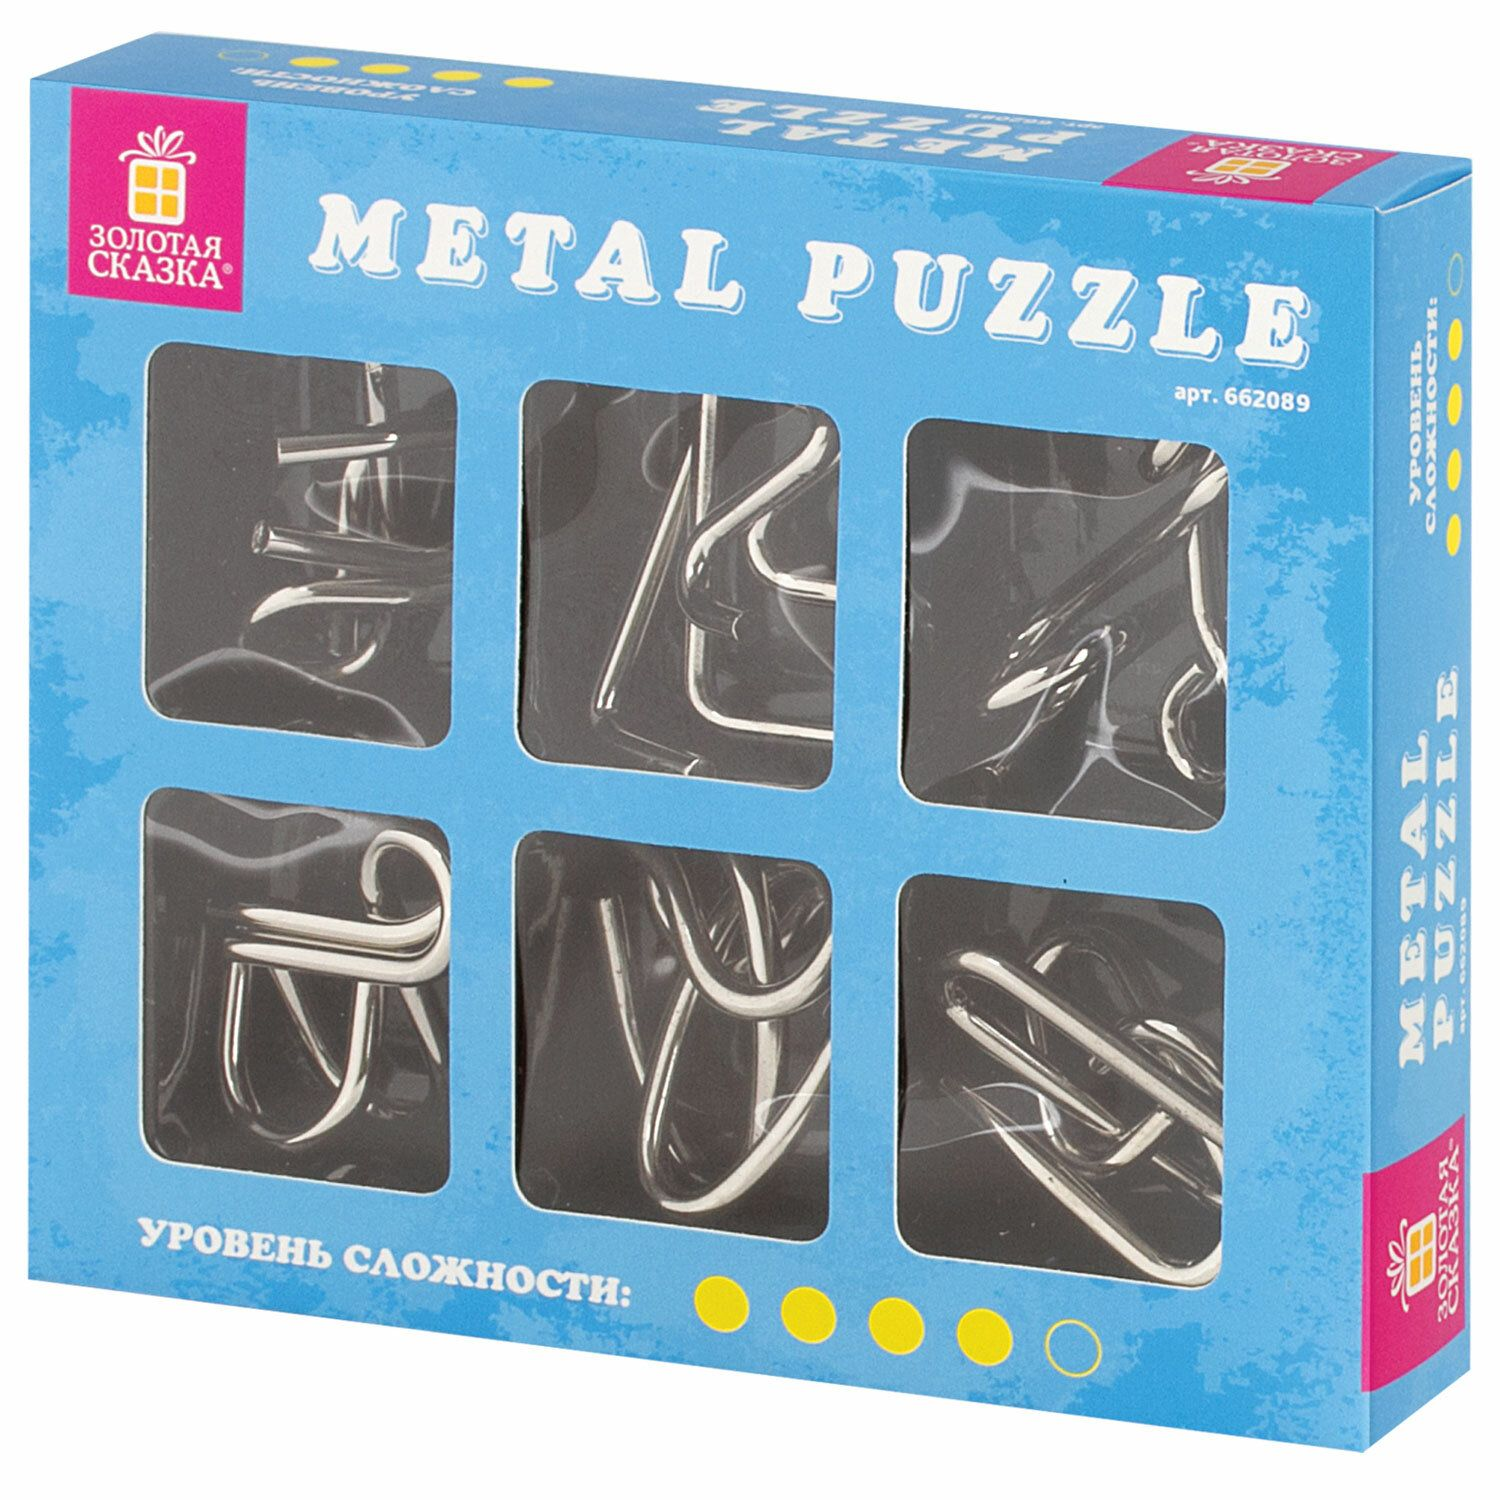 """GOLDEN TALE / Metal puzzles (difficulty level """"EXPERT""""), set of 6 pieces"""